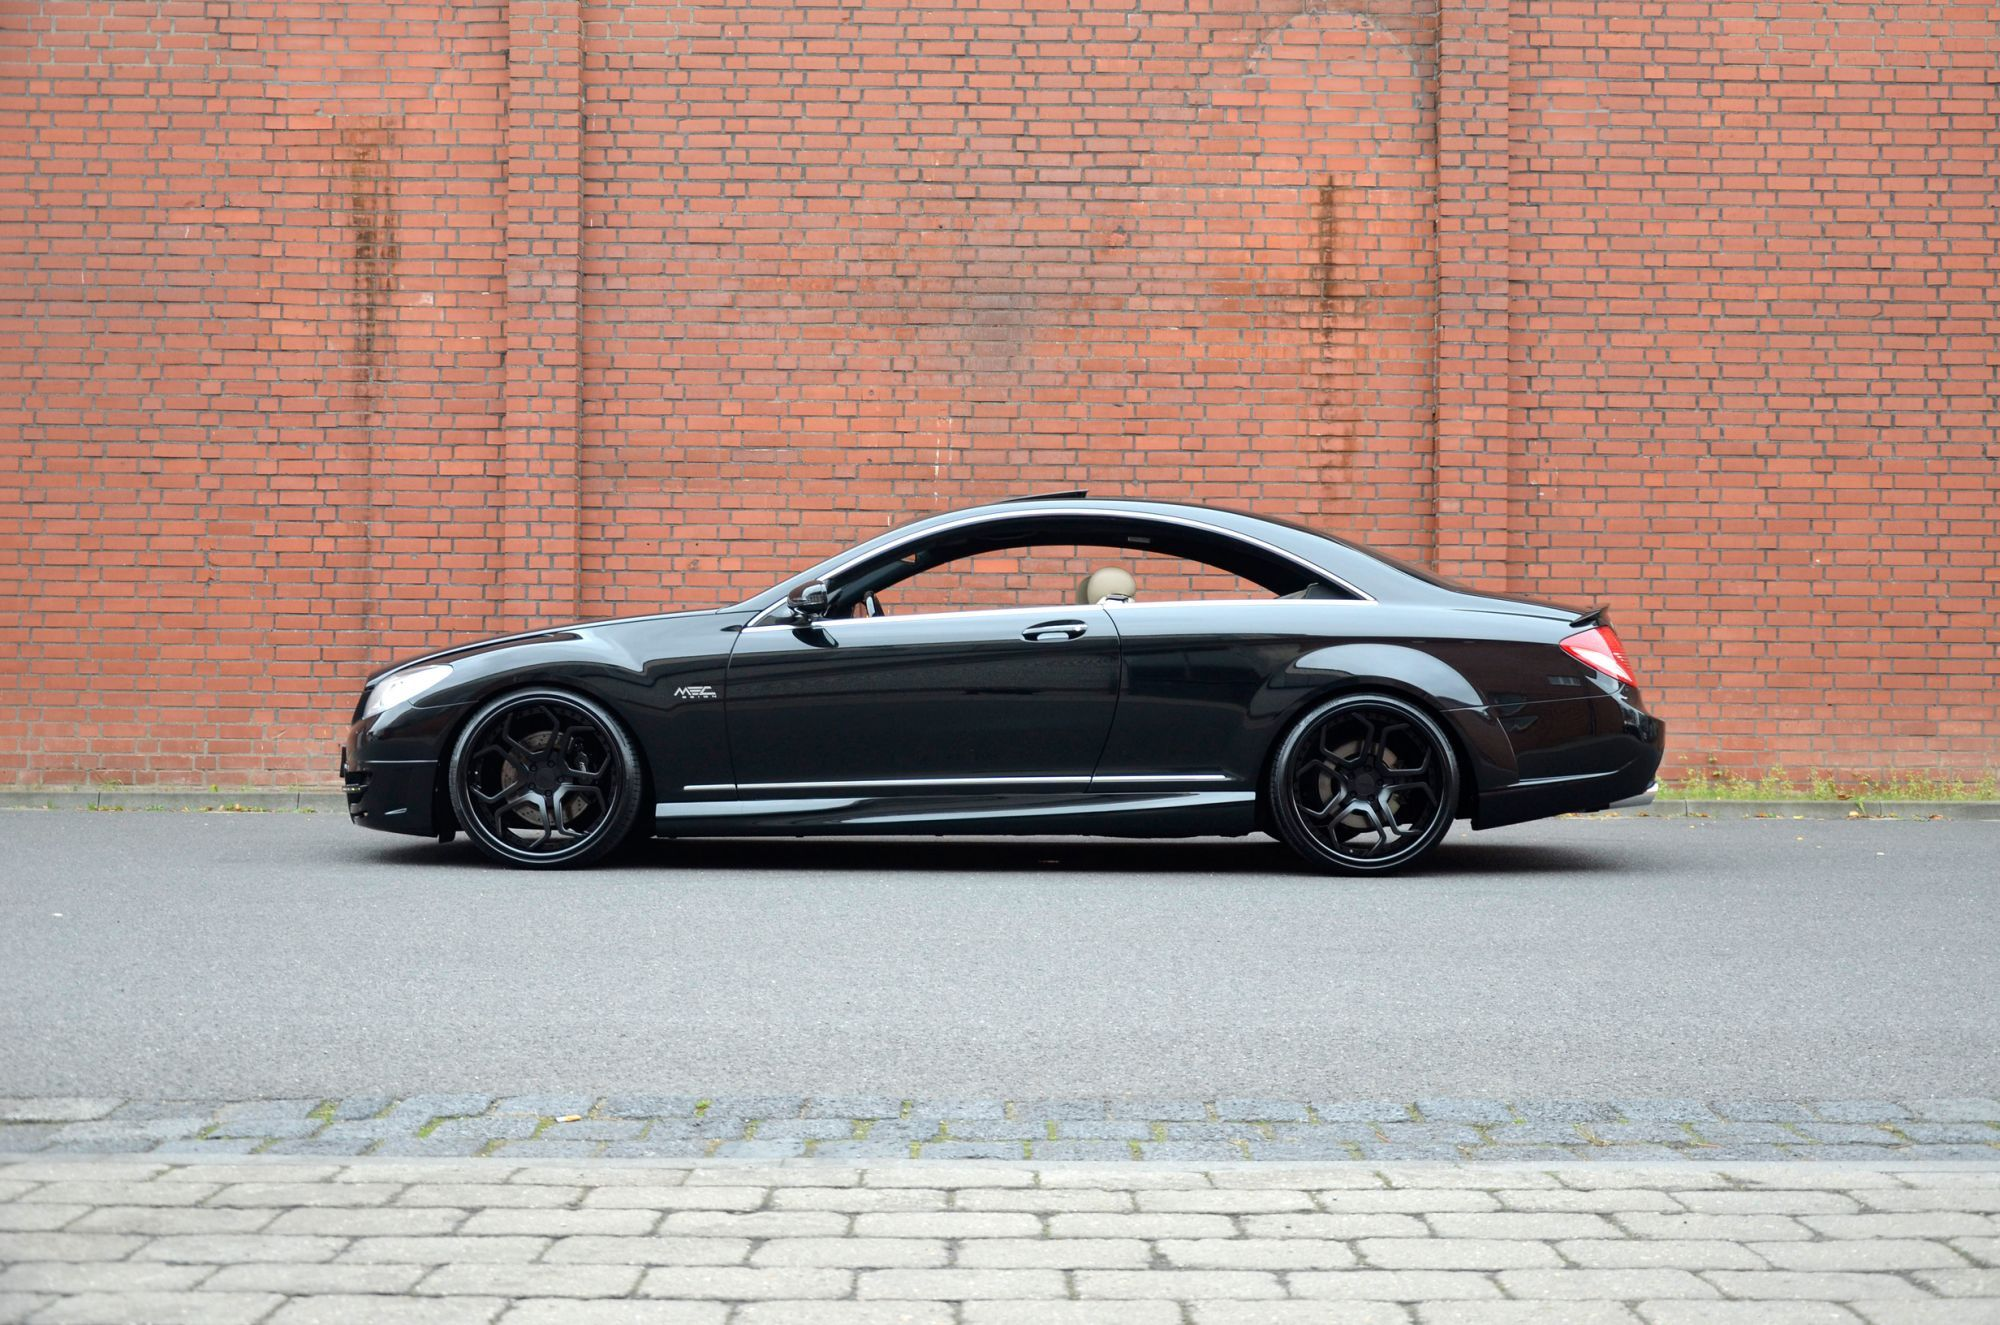 Pin By Danny Kim On Mercedes Star Mercedes Benz Cl Mercedes Benz 500 Mercedes Benz Cars